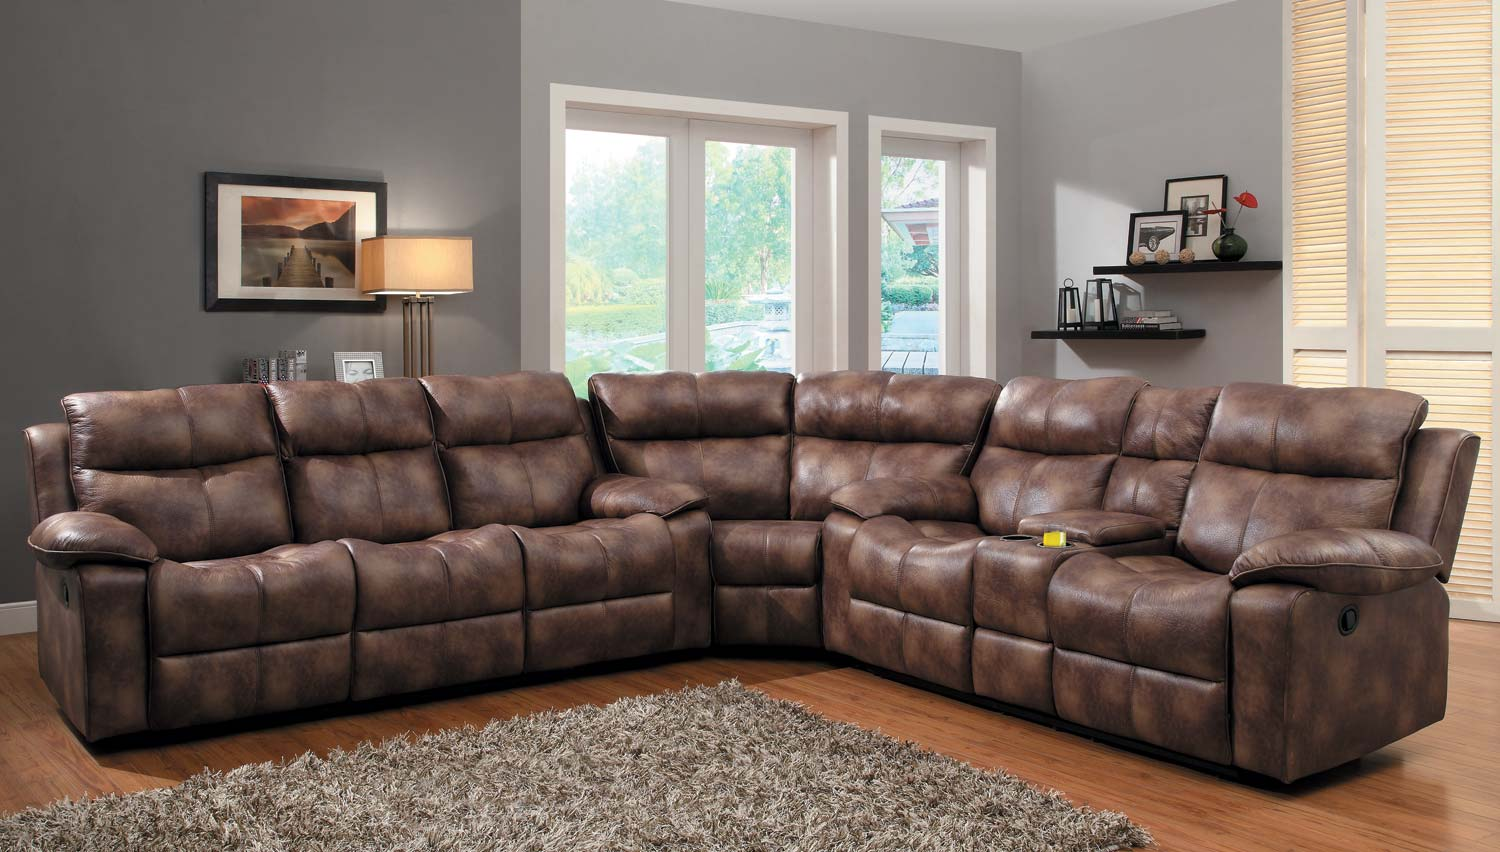 Homelegance brooklyn heights reclining sectional sofa set for Furniture 2 u